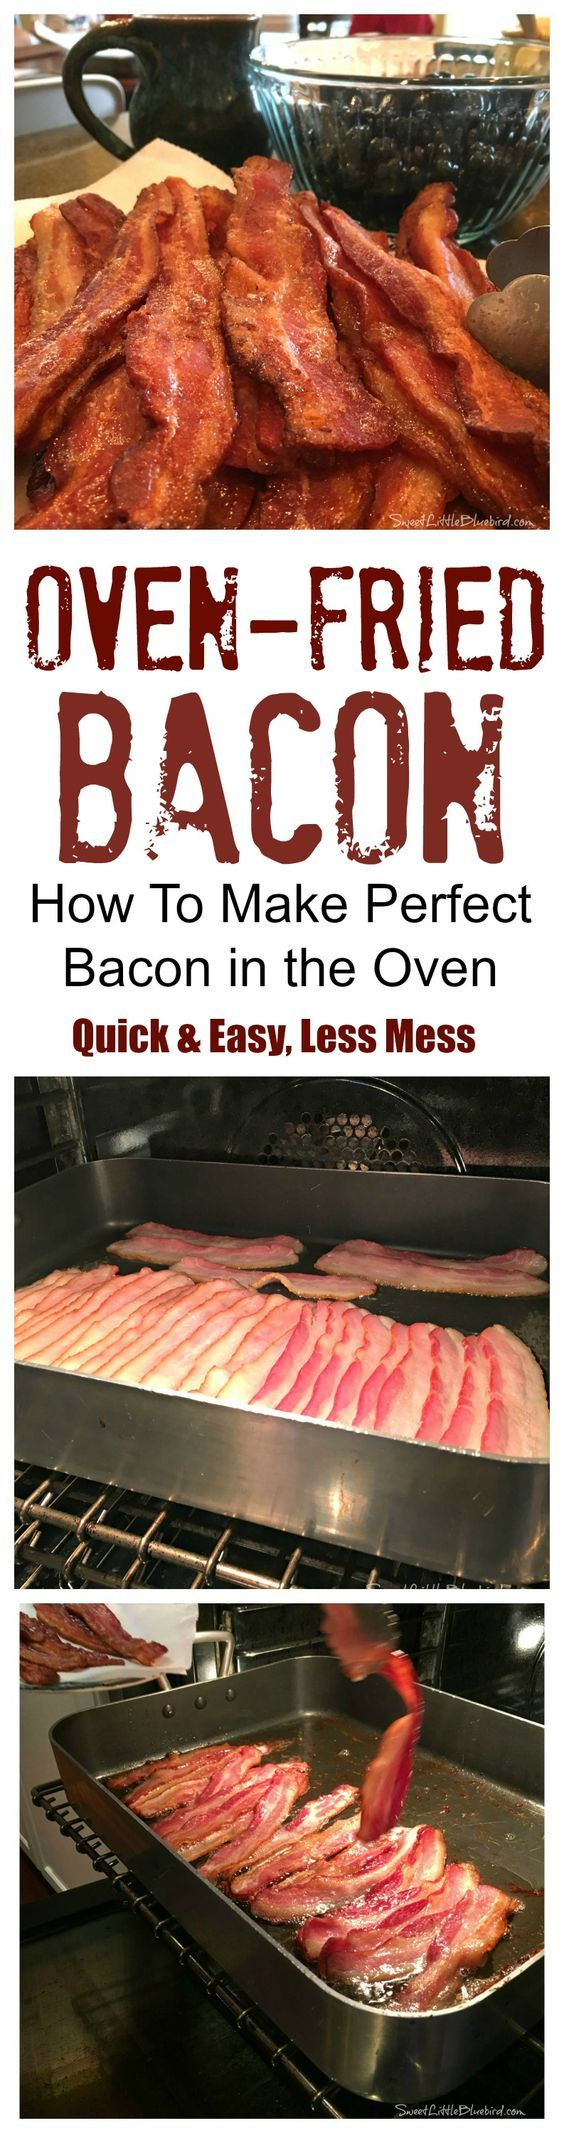 Ovenfried Bacon  How To Make Perfect Bacon In The Oven